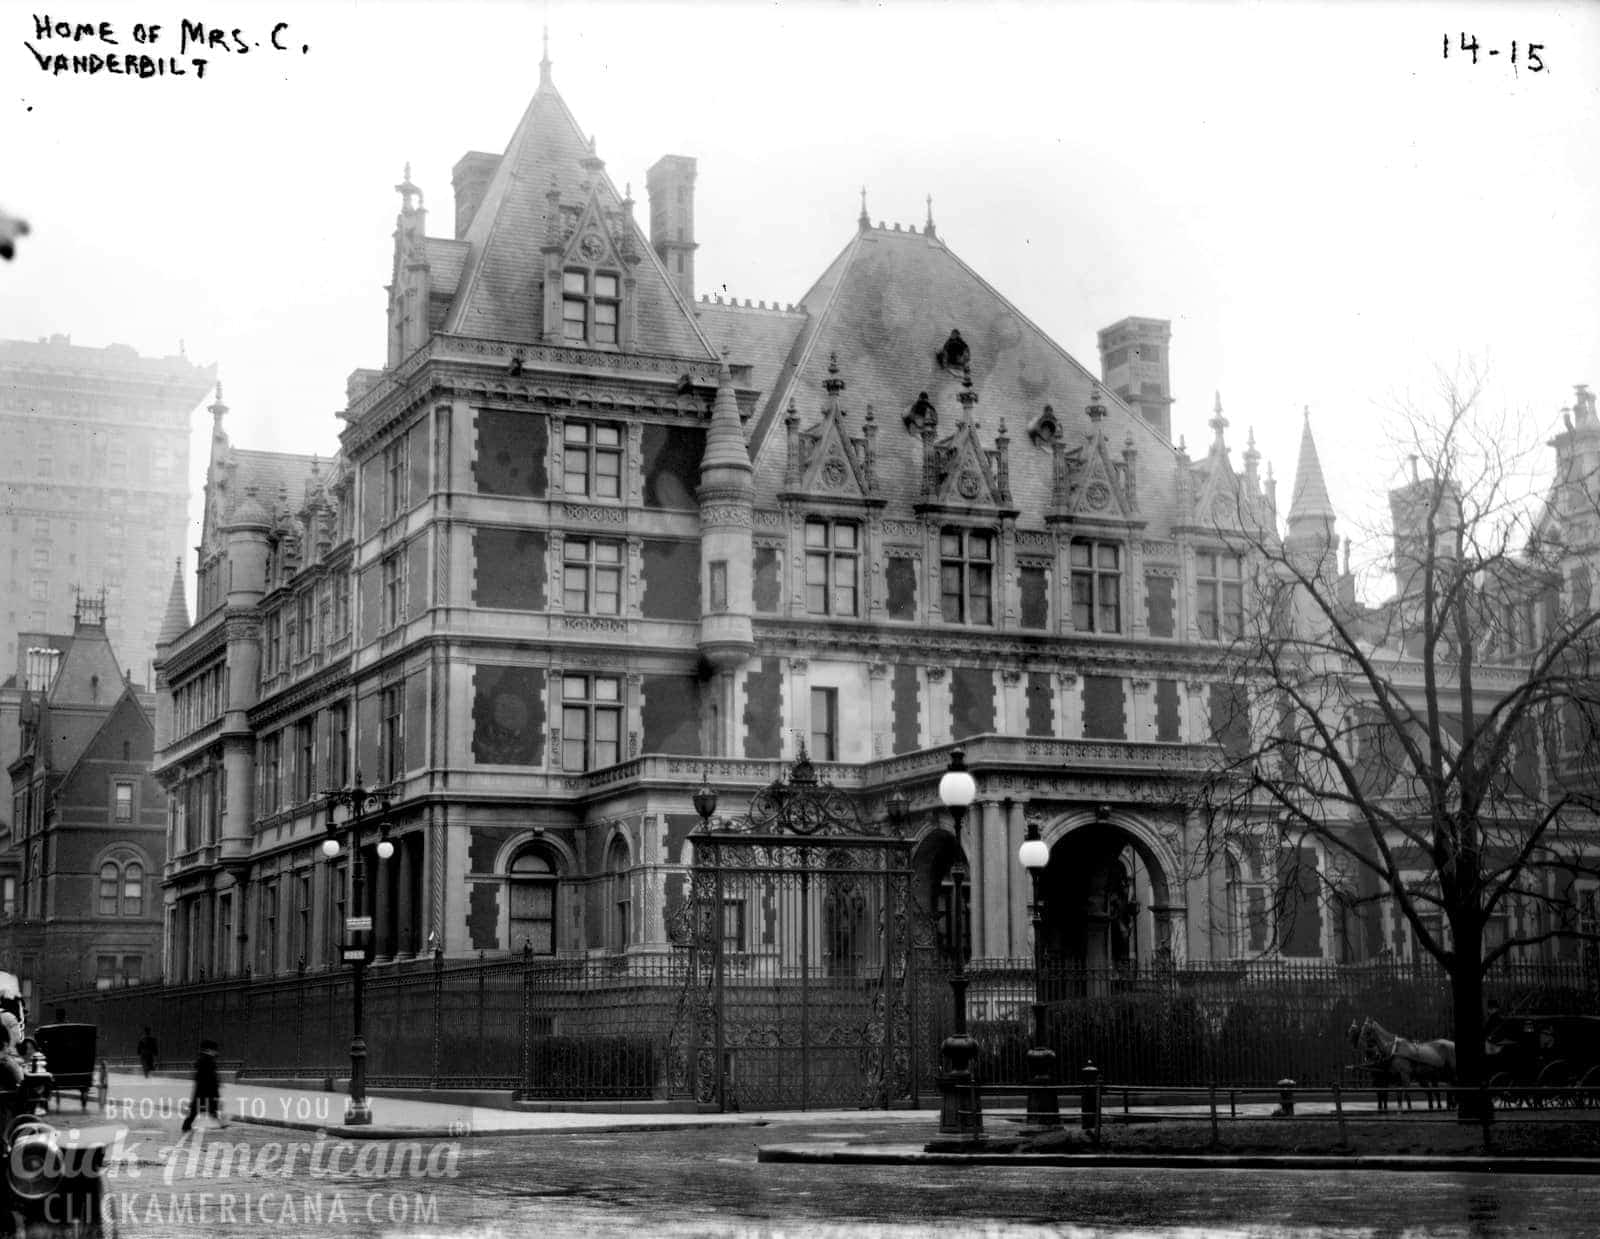 Home of Mrs Cornelius Vanderbilt - Fifth Avenue New York City - 1894